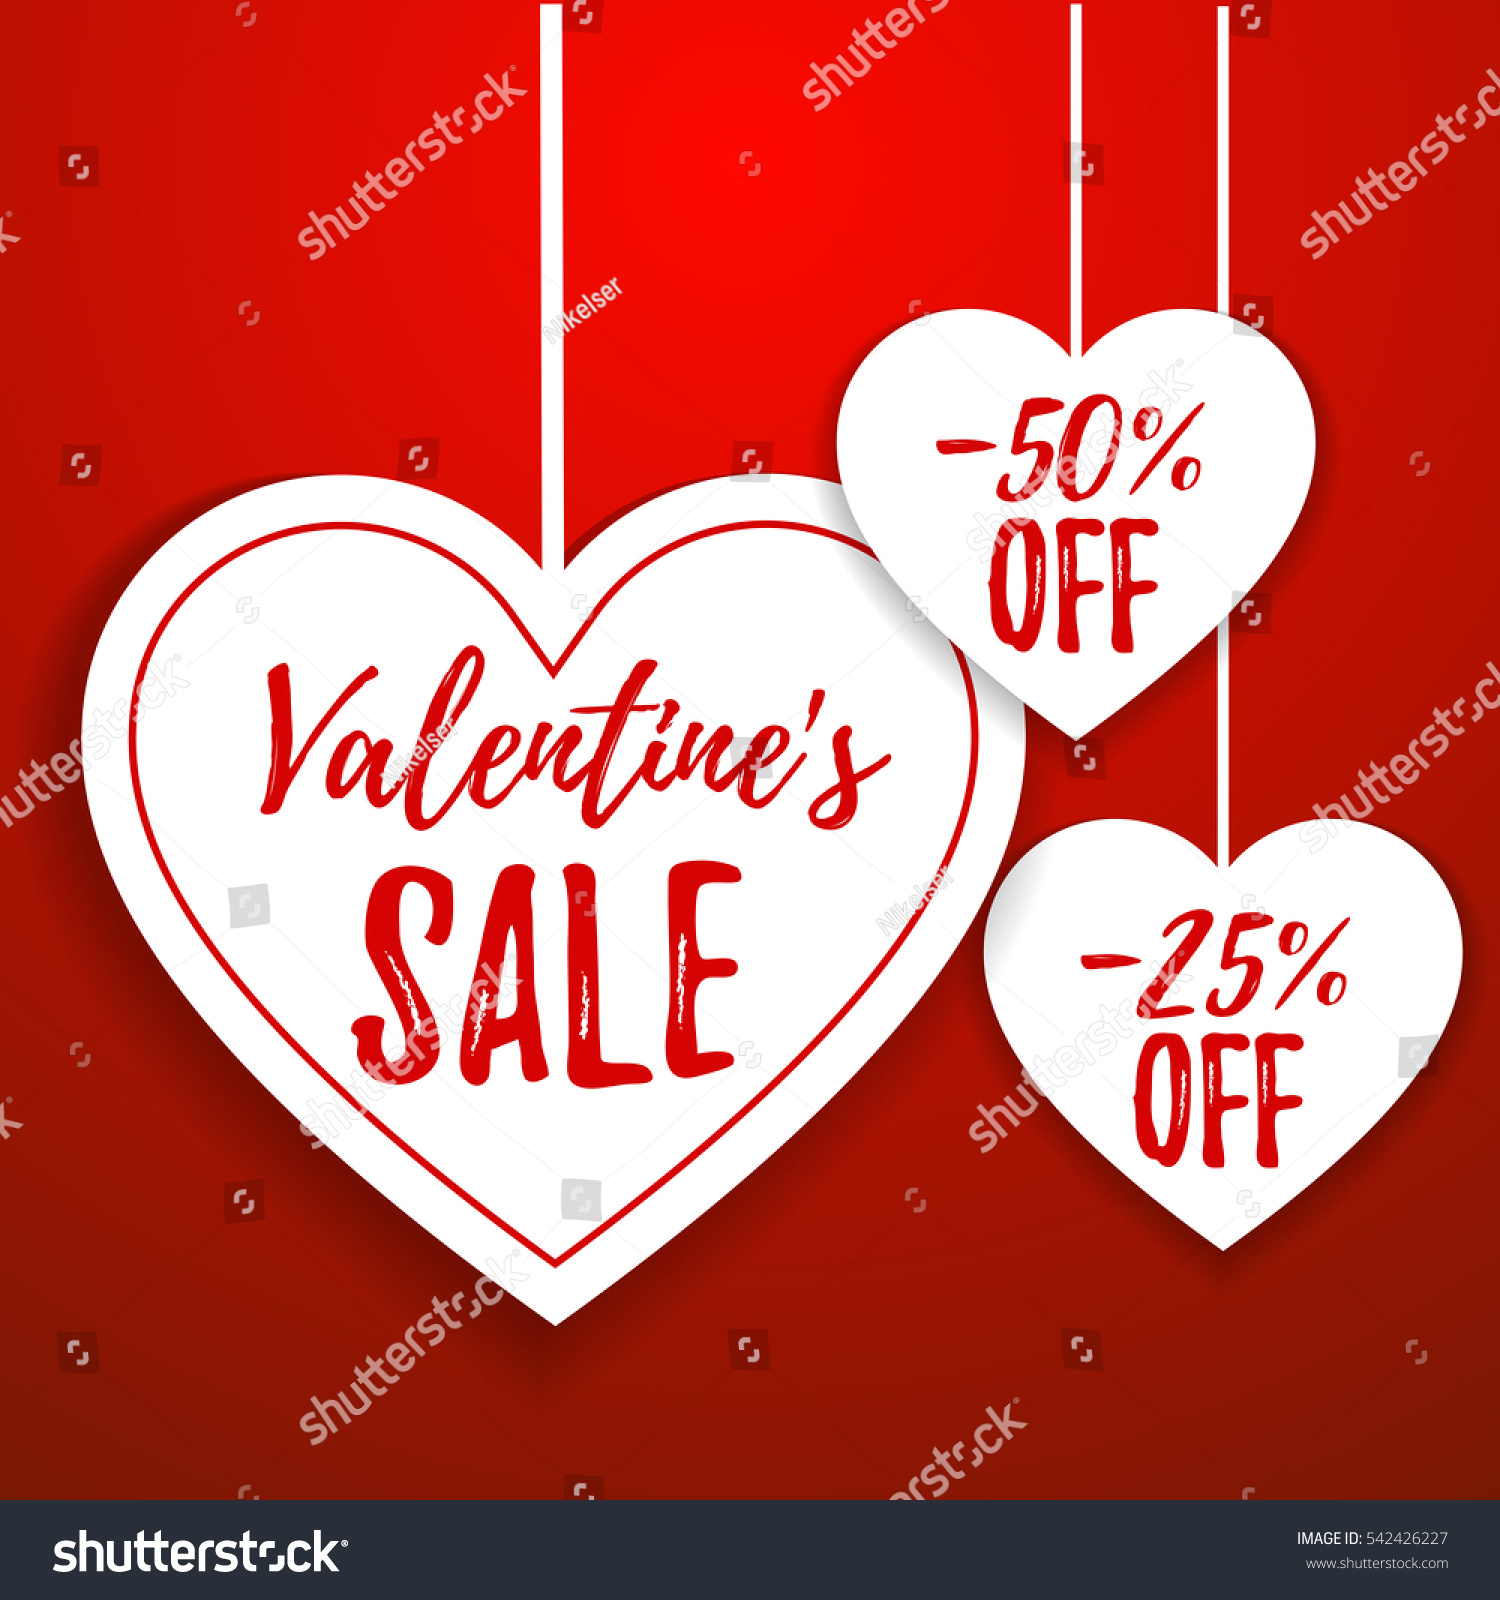 valentines day sale offer banner template red heart with lettering isolated on red - Valentine Sale